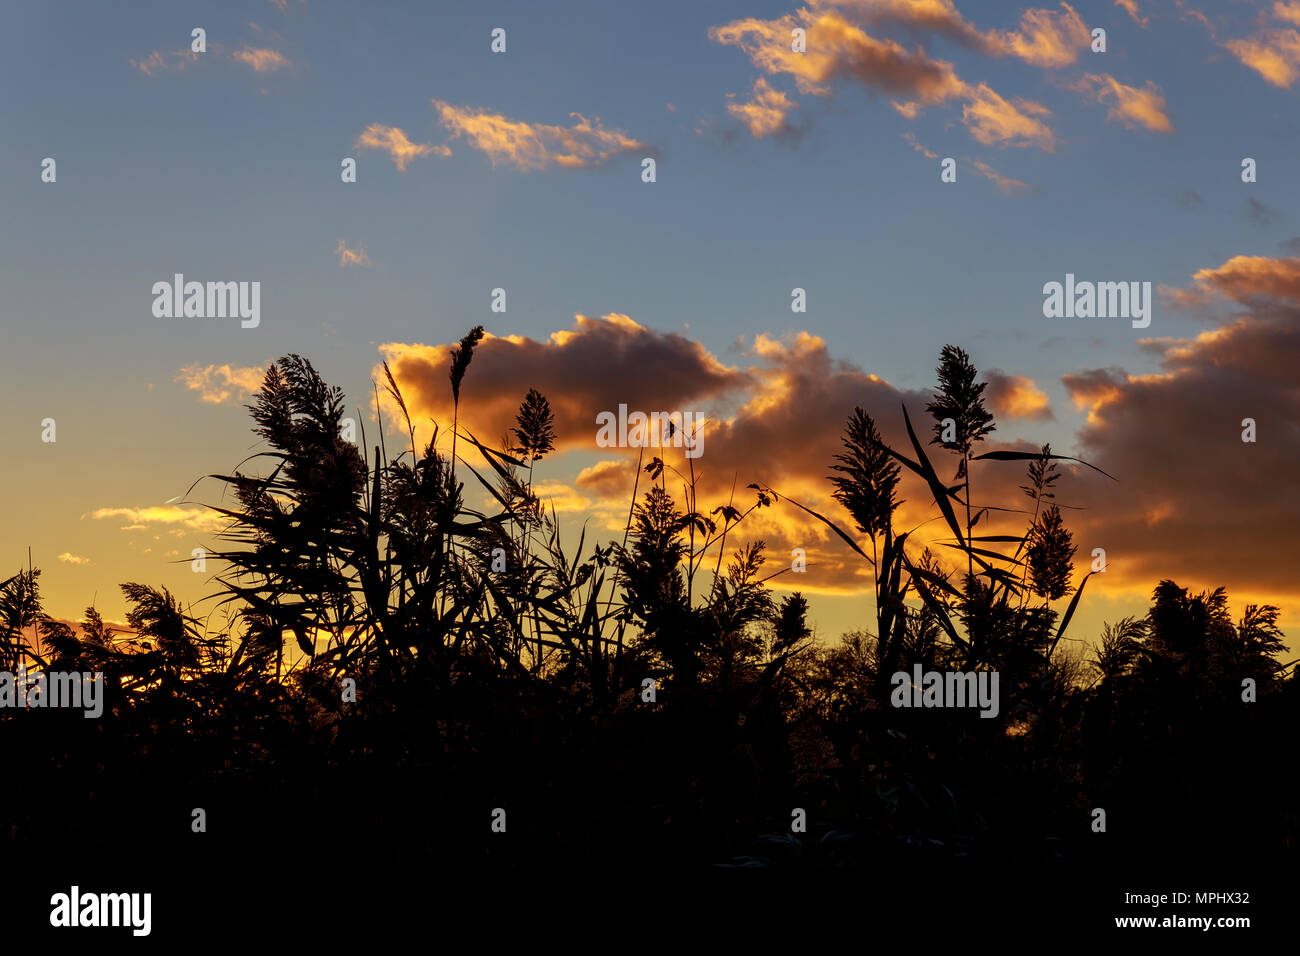 Vast orange speckled clouds form bowl in Autumn sunset sky in semi - Stock Image